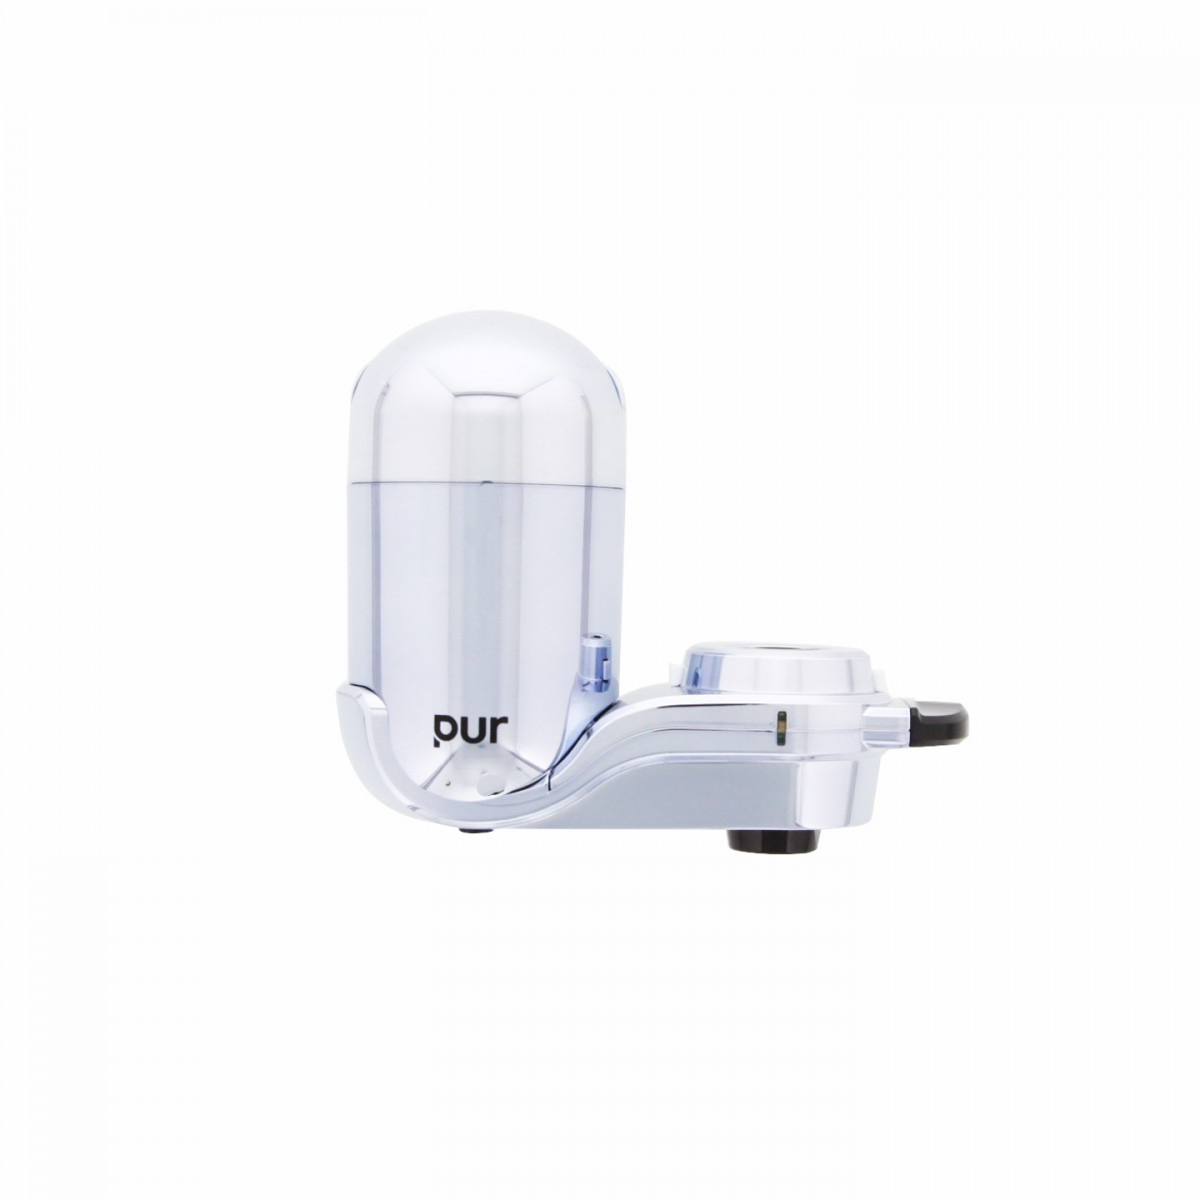 PUR® FM-3700B Vertical Faucet Water Filter System - Chrome